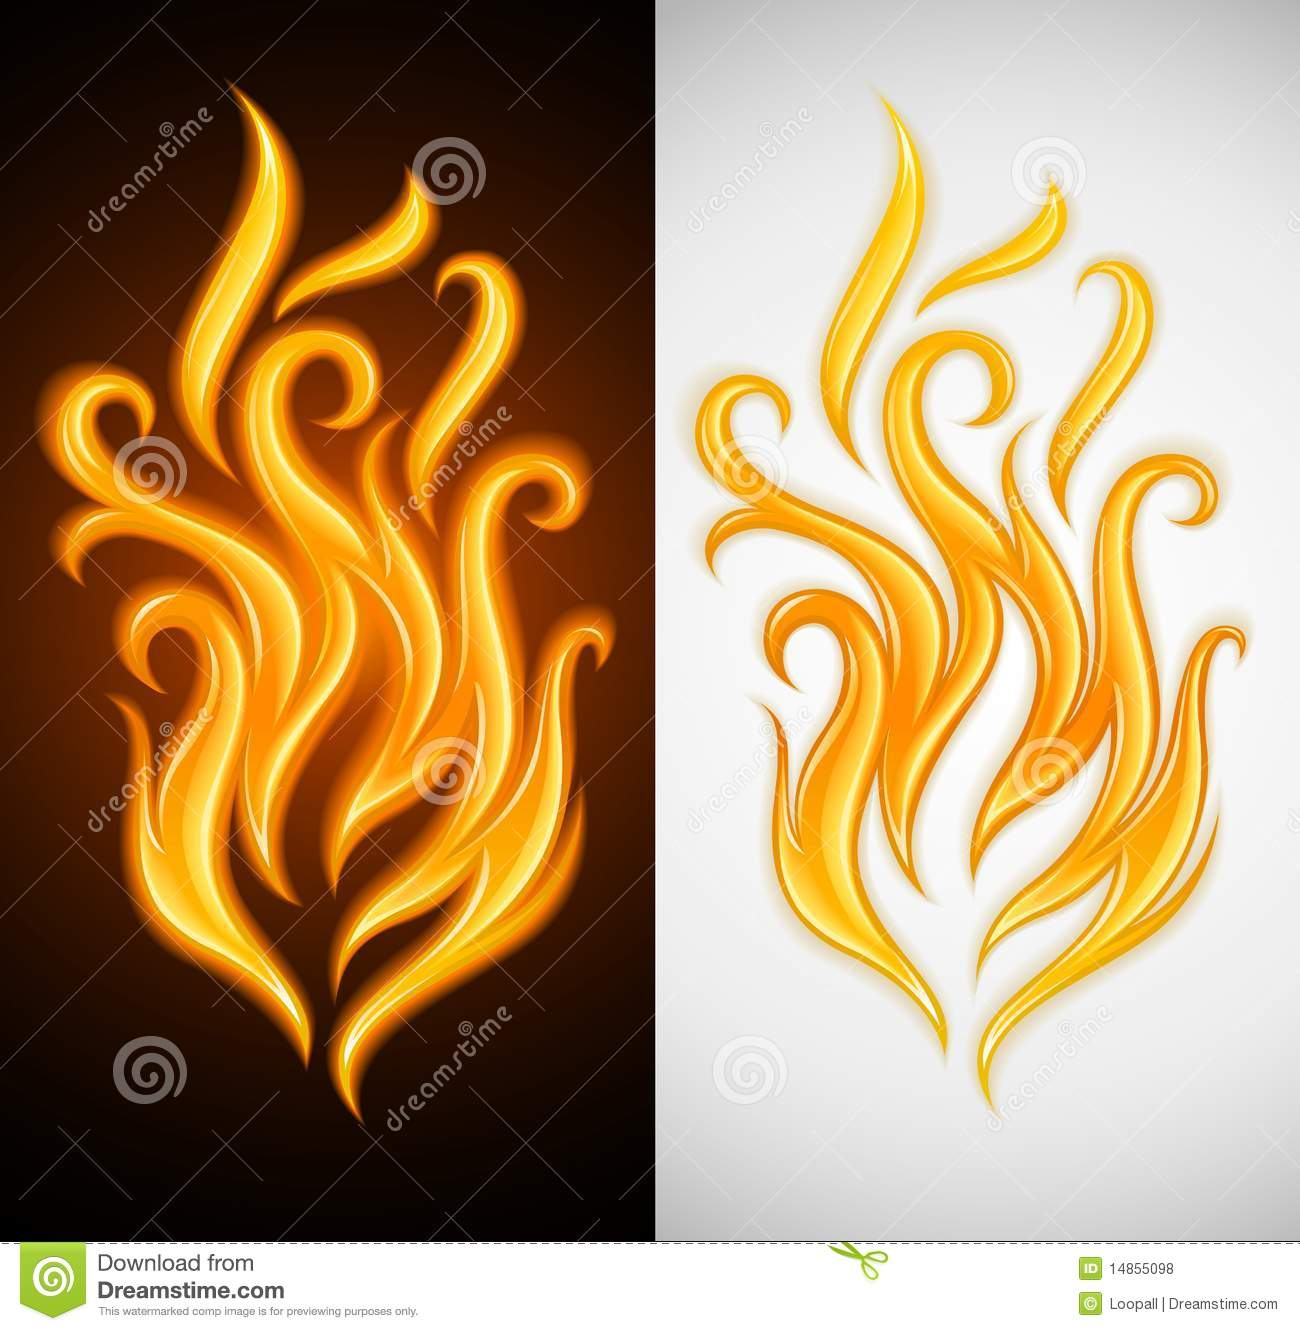 Hot yellow flame symbol of burning fire